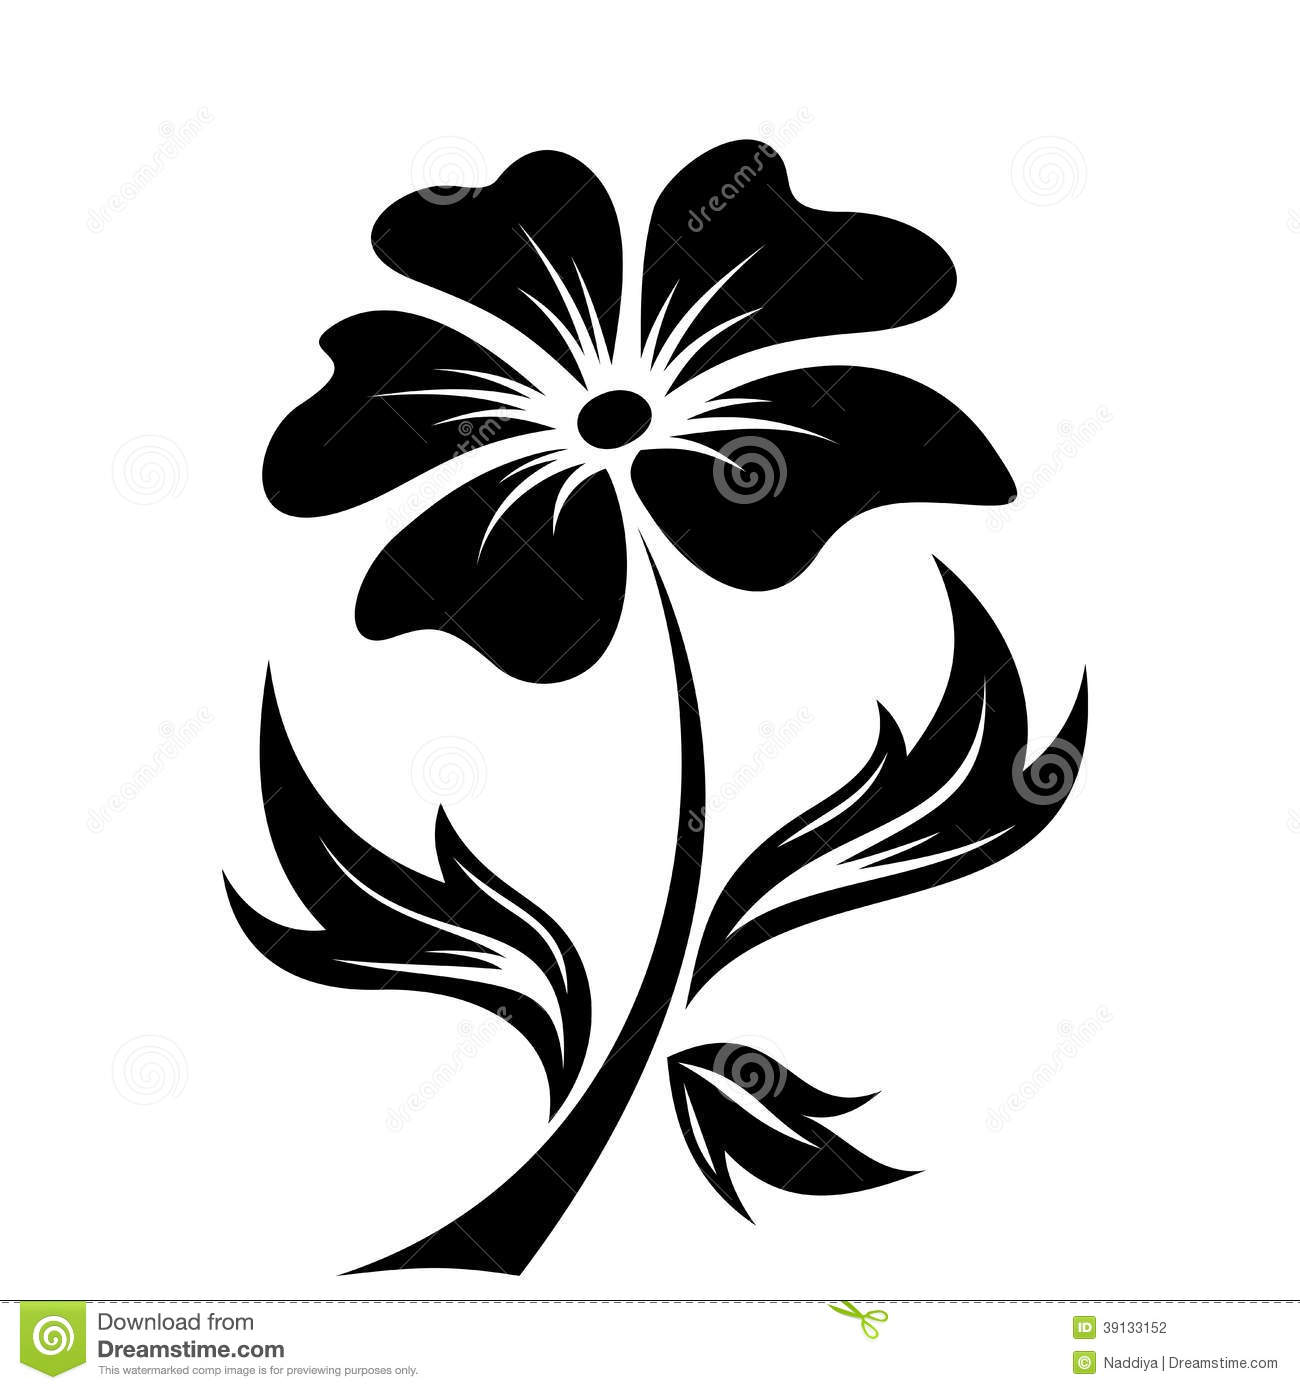 Black Silhouette Of Flower. Vector Illustration. Stock Vector - Image ...